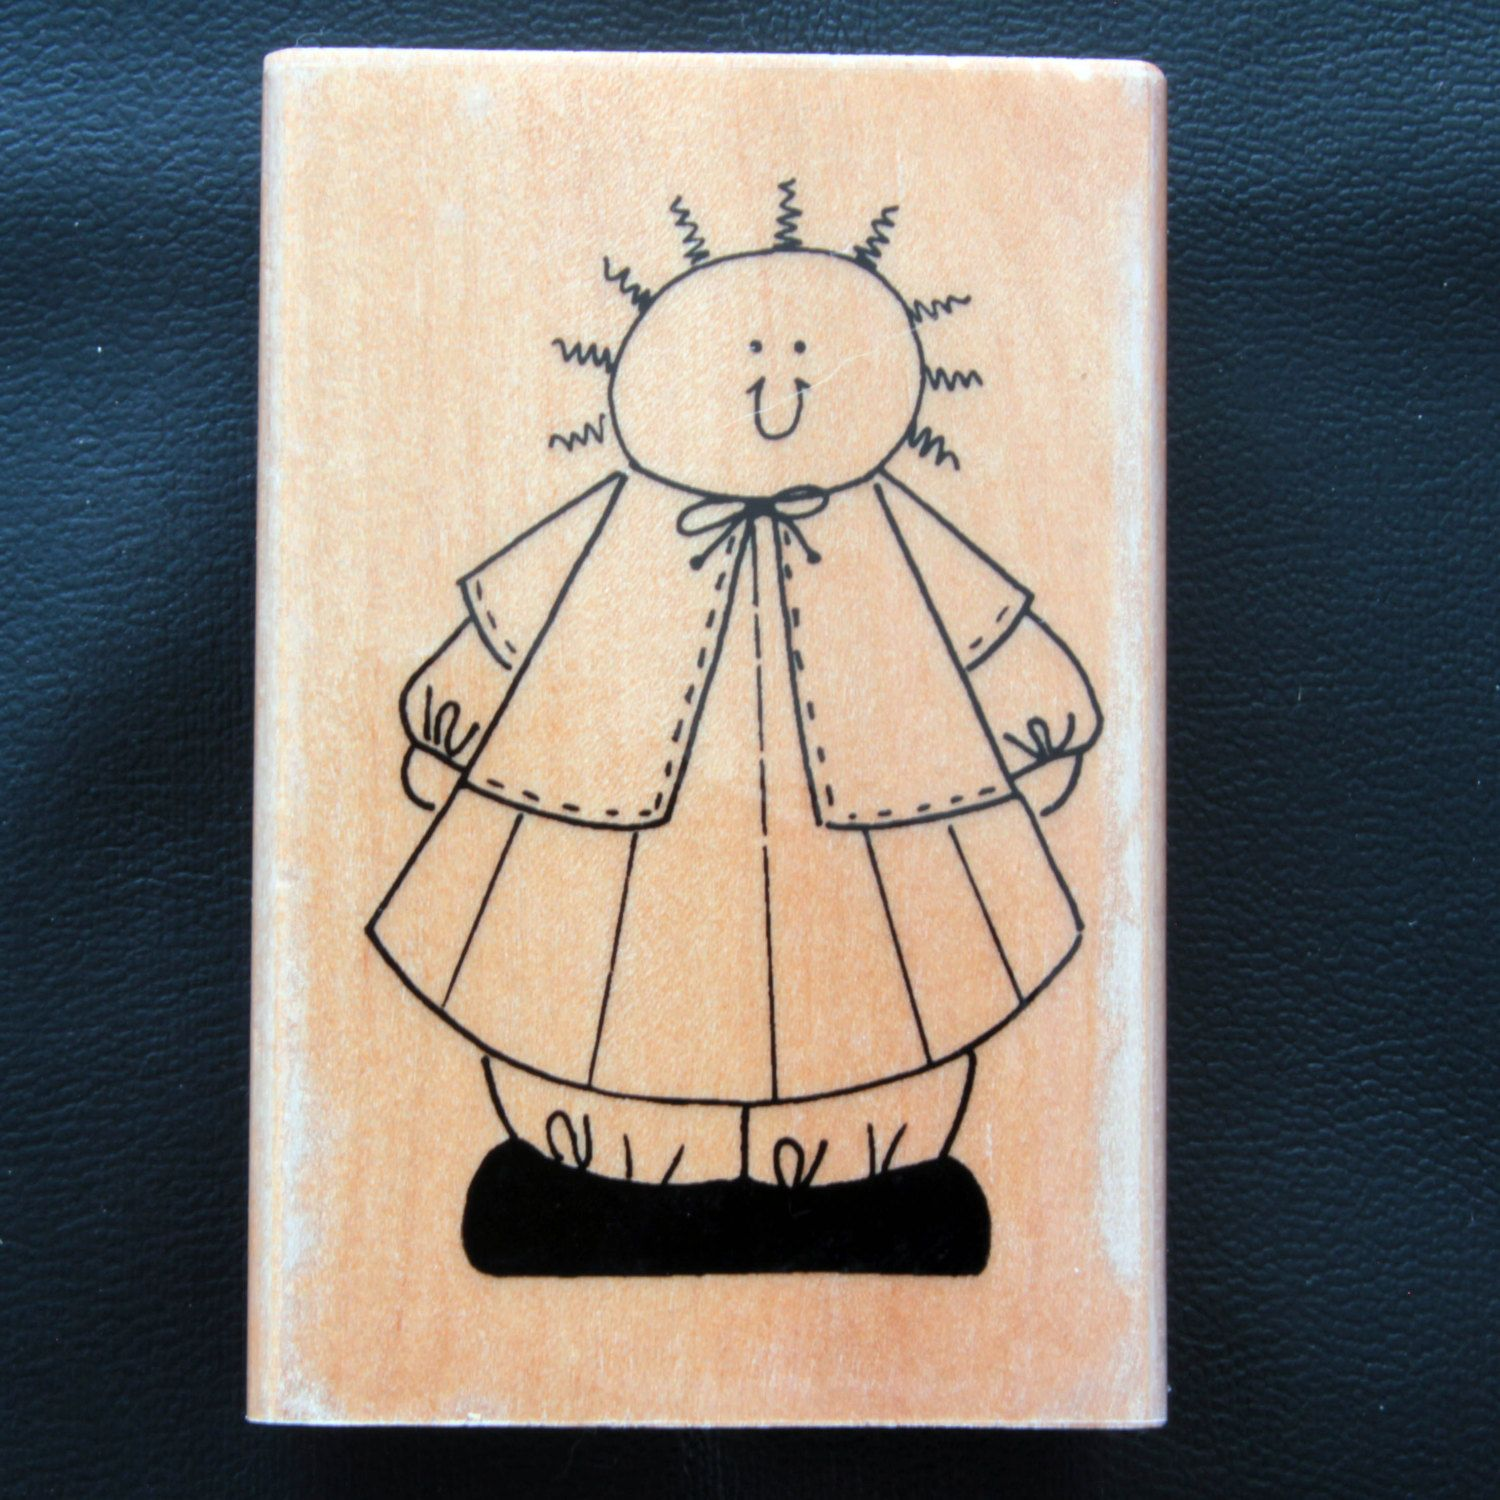 Rubber stamps for crafting - Cute Cartoon Man With Curly Hair In Smock Rubber Stamp By Home And Heart By